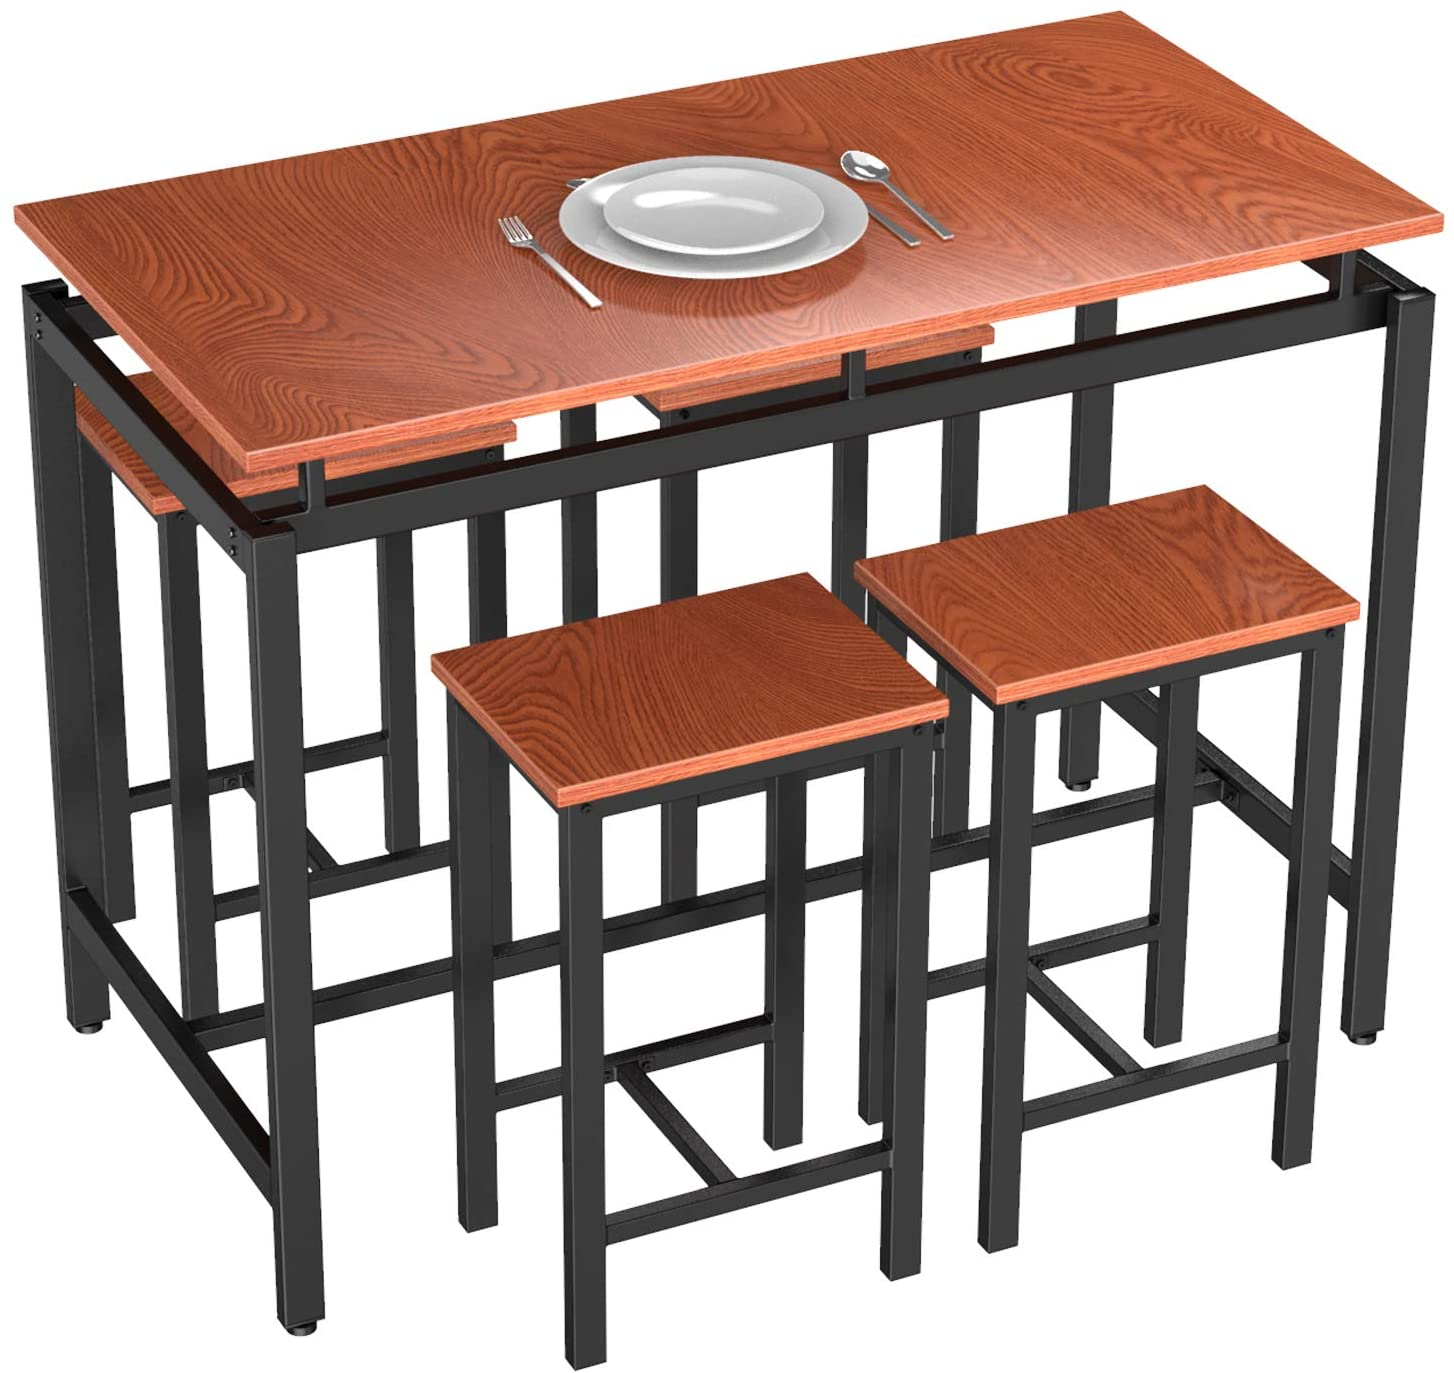 clearance dining room set 5 piece modern small kitchen on dining room sets on clearance id=79265